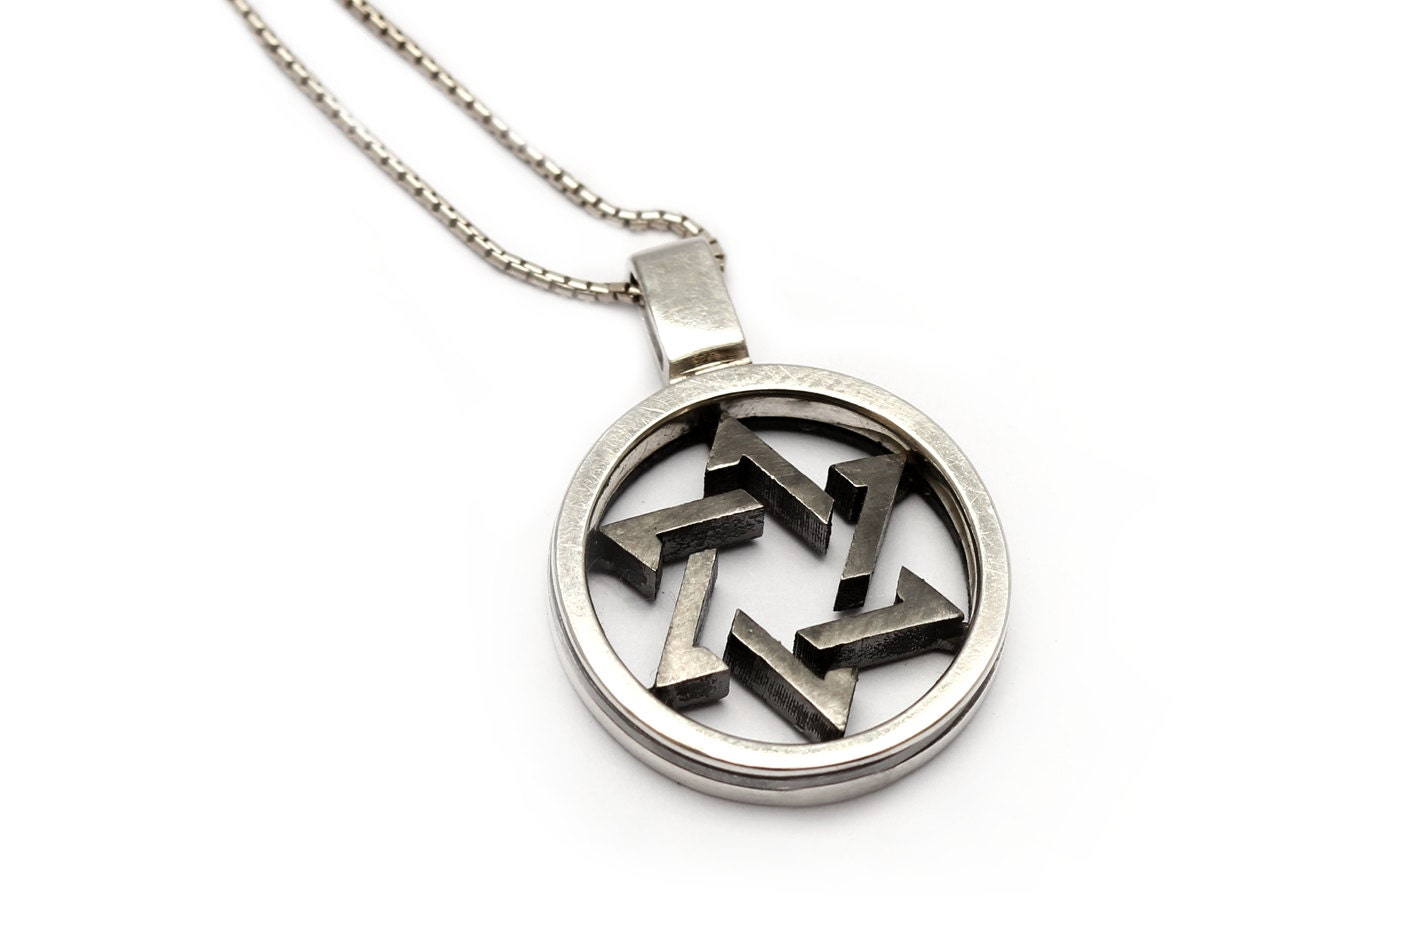 Star of david necklace jewelry gift pendent judaic jewelry for Star of david jewelry wholesale